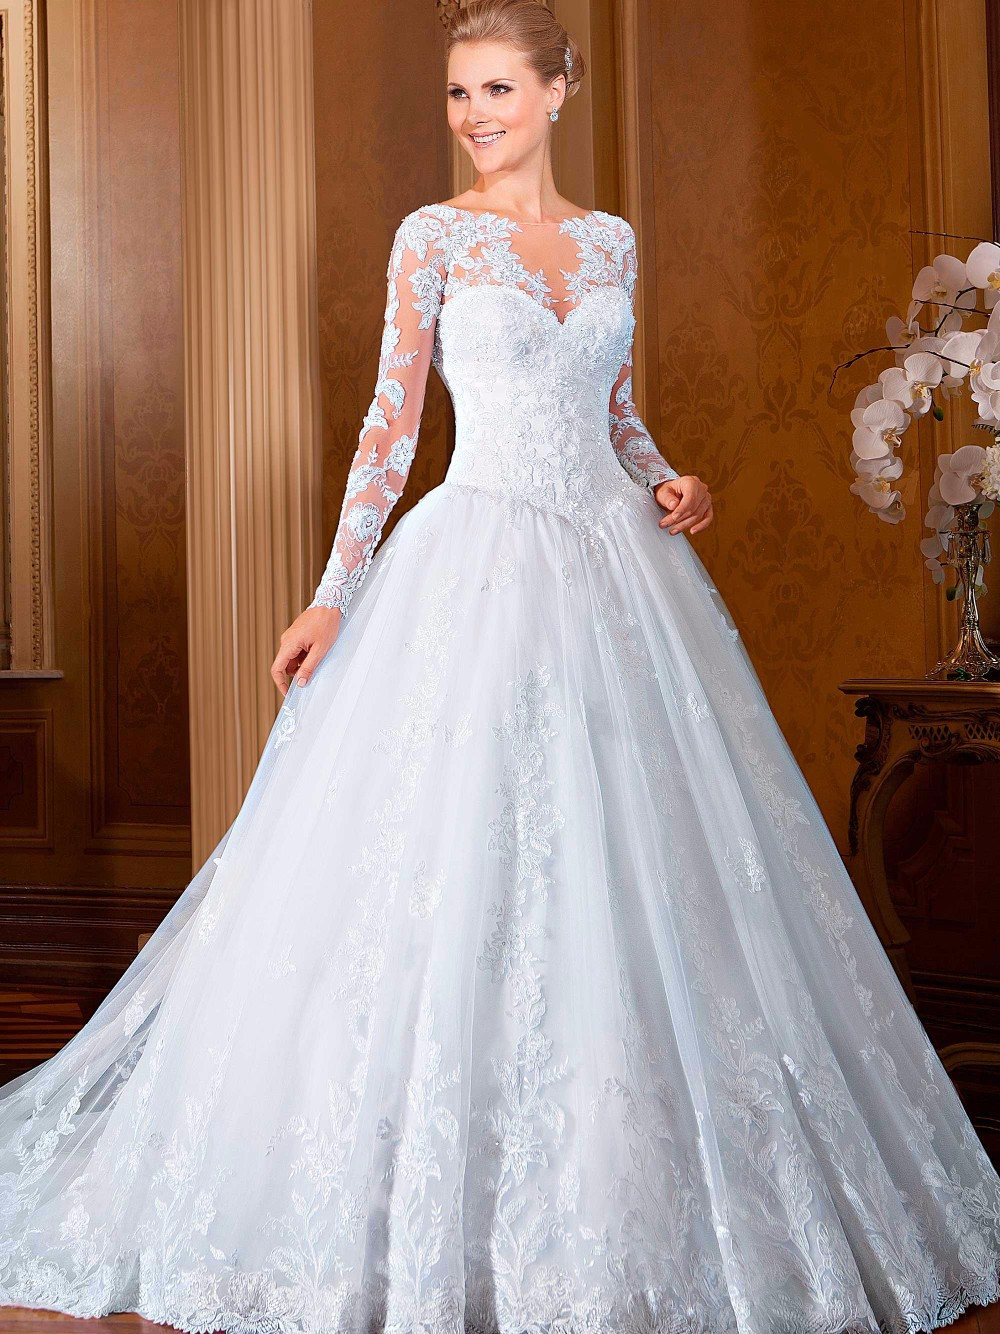 2015 new fashionable lace wedding dresses plus size a line for Lace wedding dresses plus size